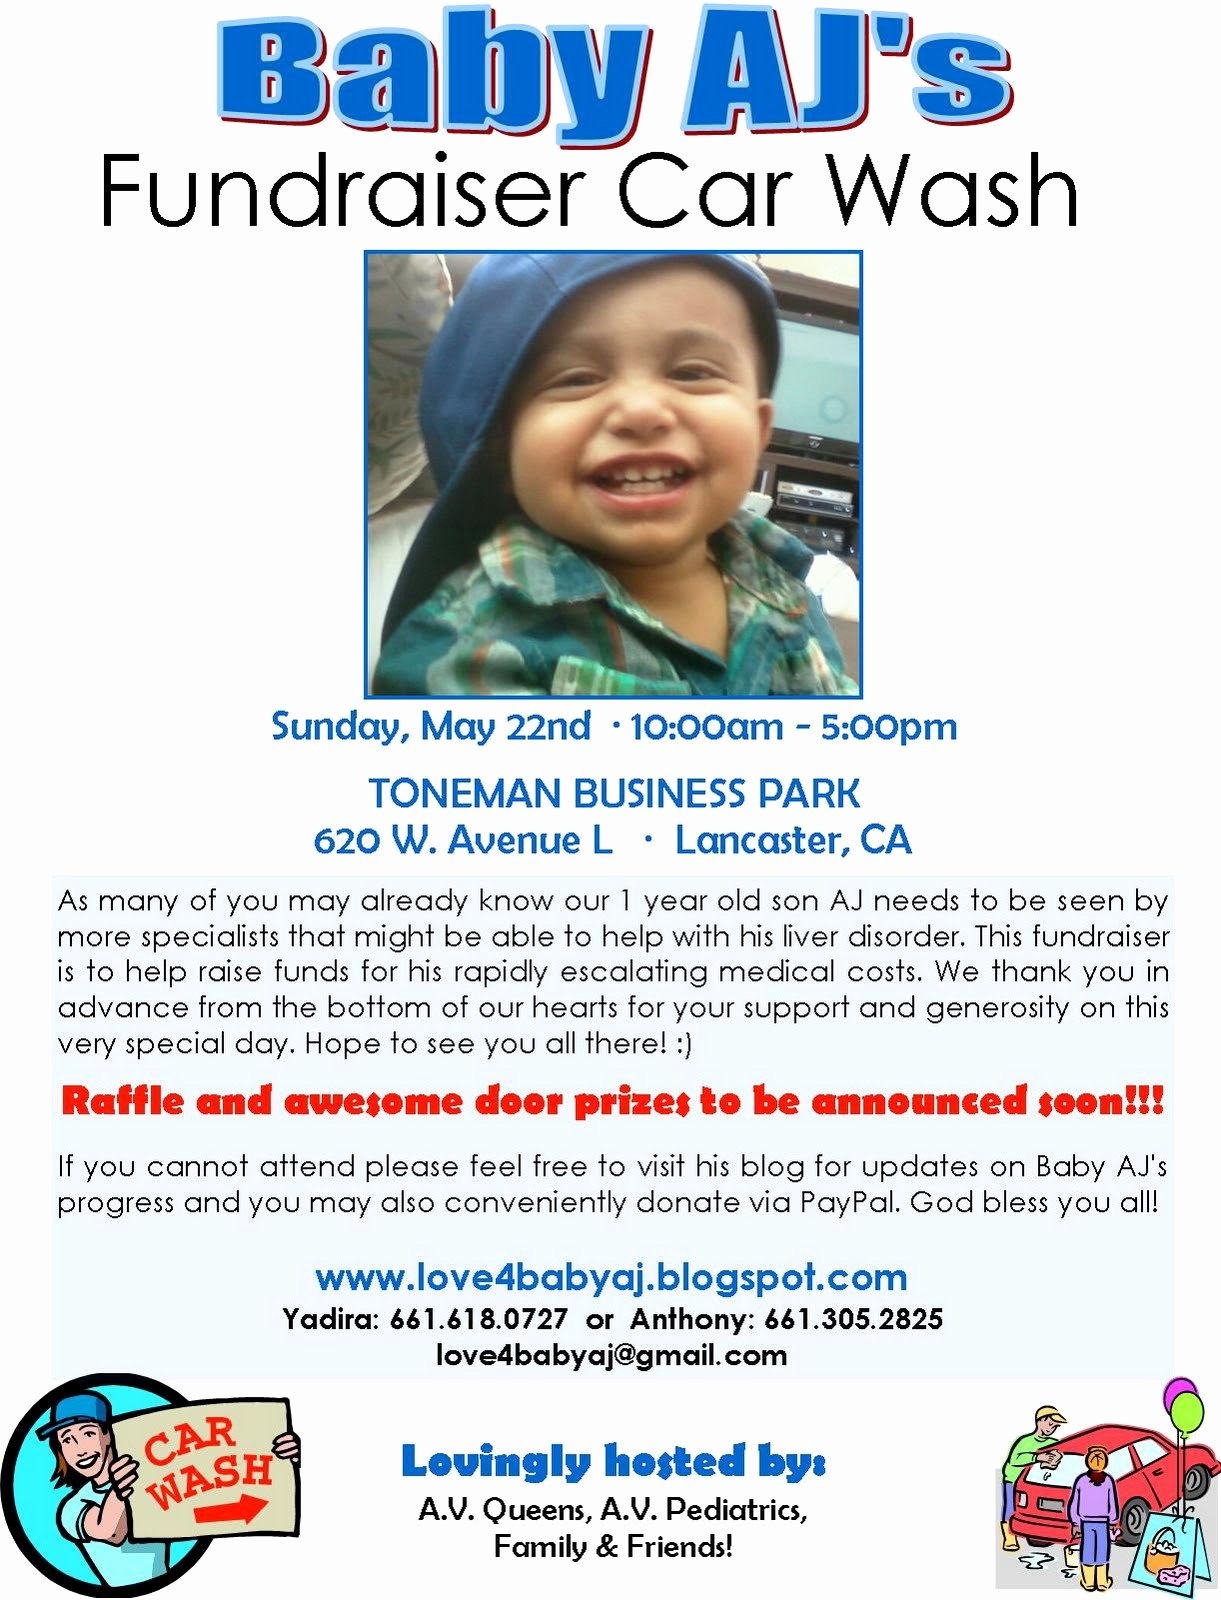 Car Wash Fundraiser Flyers Best Of Baby Aj S Blog Baby Aj S Fundraiser Car Wash May 22nd